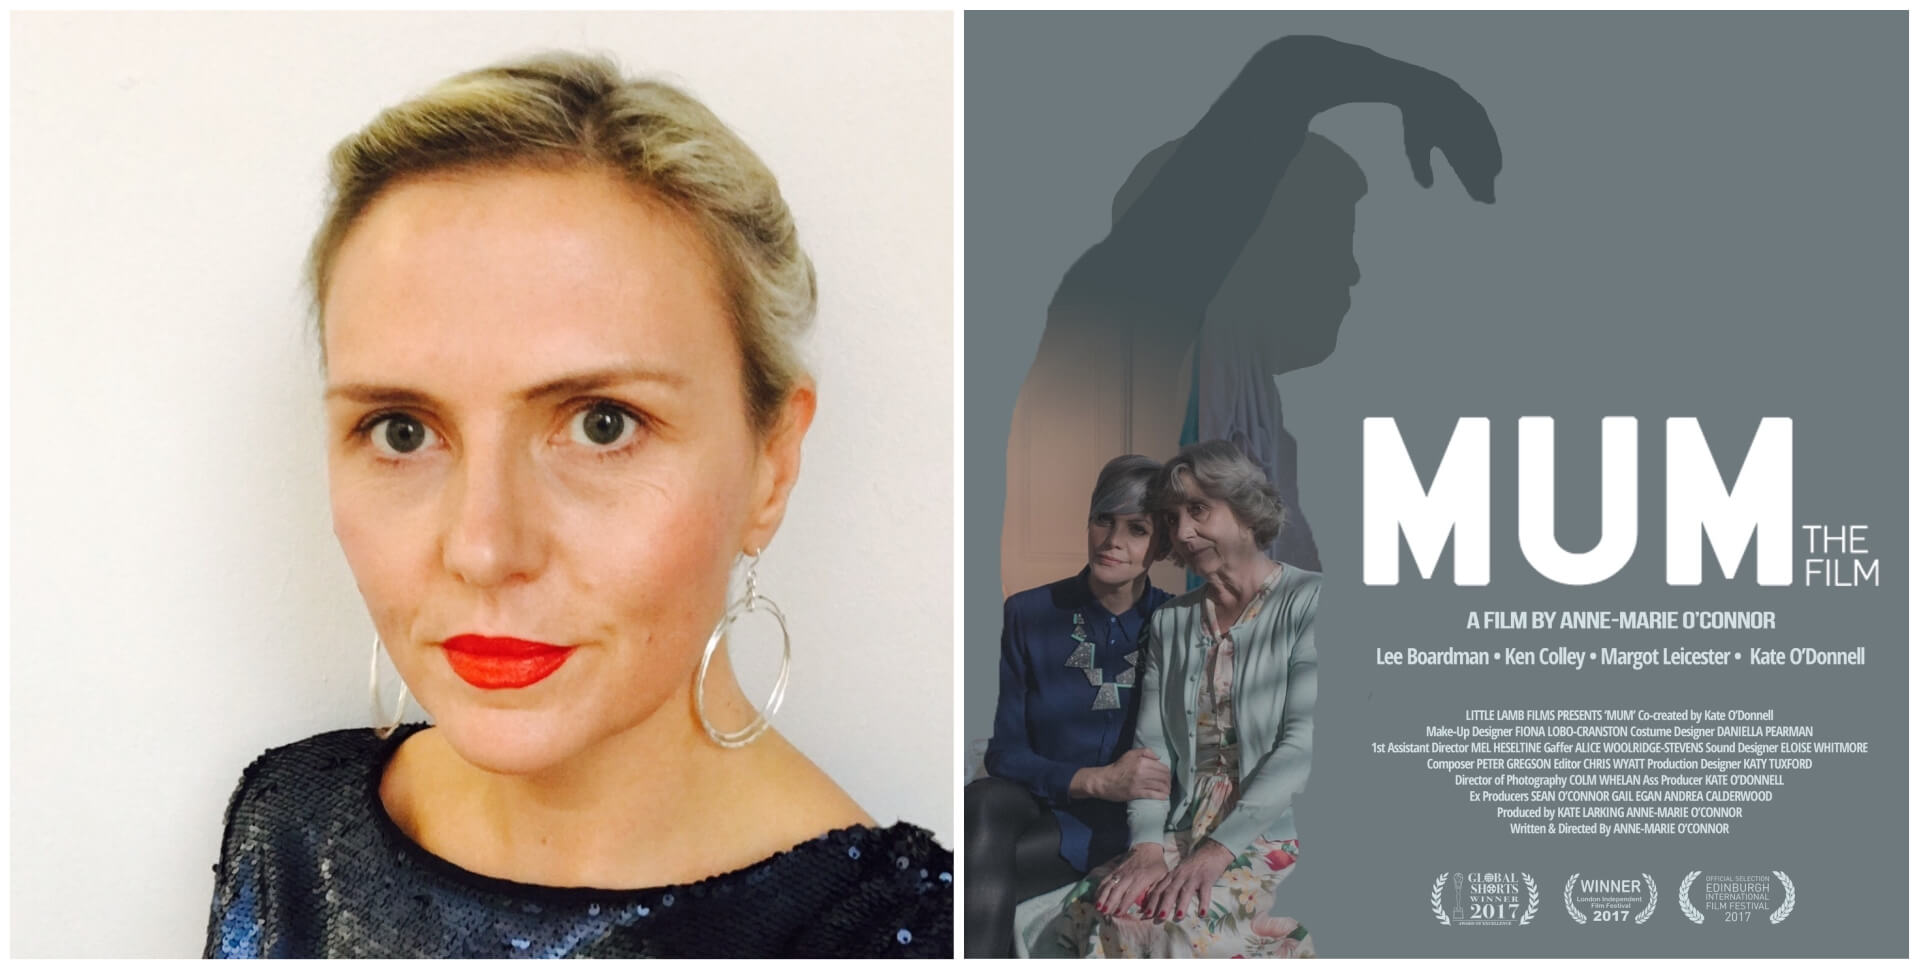 Mum (Short Film) Interview with Anne Marie OConnor